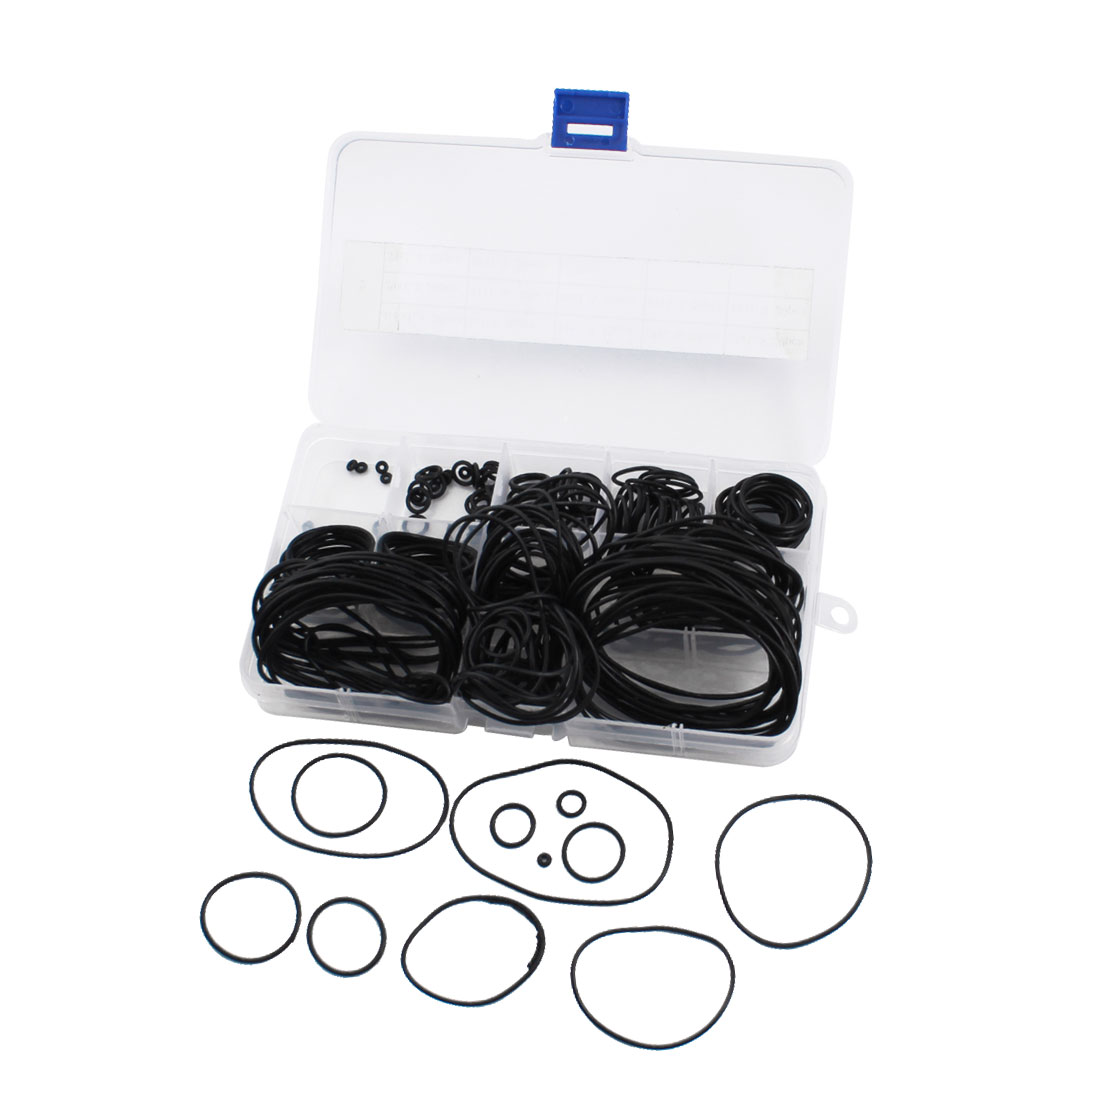 240Pcs Assortment 4.5mm-58mm OD 12 Size Rubber Oil Sealing O Ring Washer Gasket